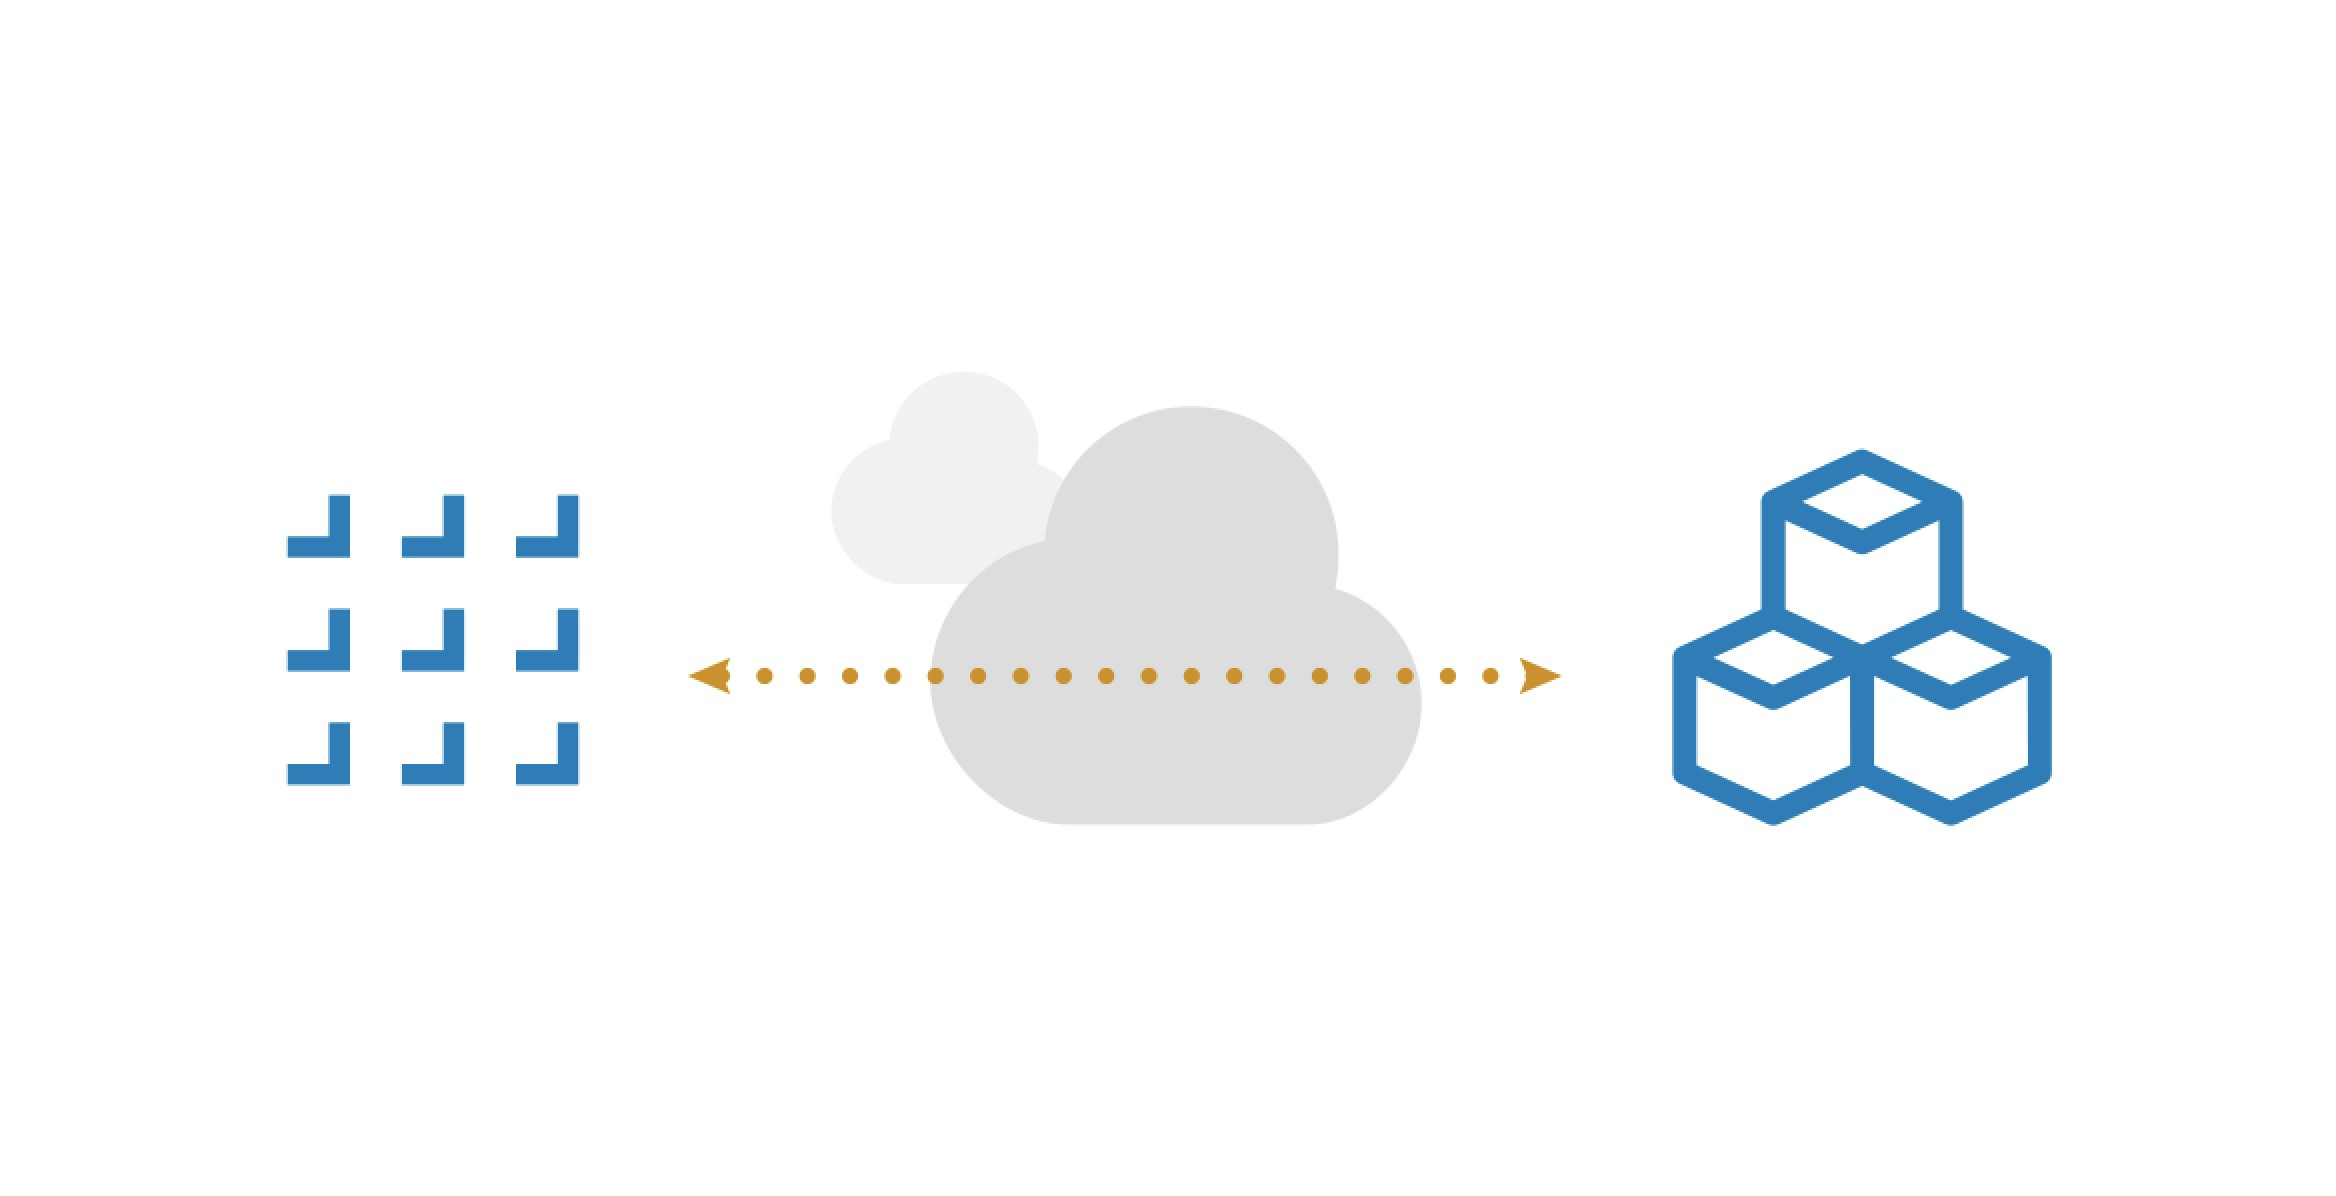 Hybrid Engine Diagram Configuring Hybrid Linked Mode Hlm for Vmware Cloud On Aws Of Hybrid Engine Diagram Hybrid Auto Informations